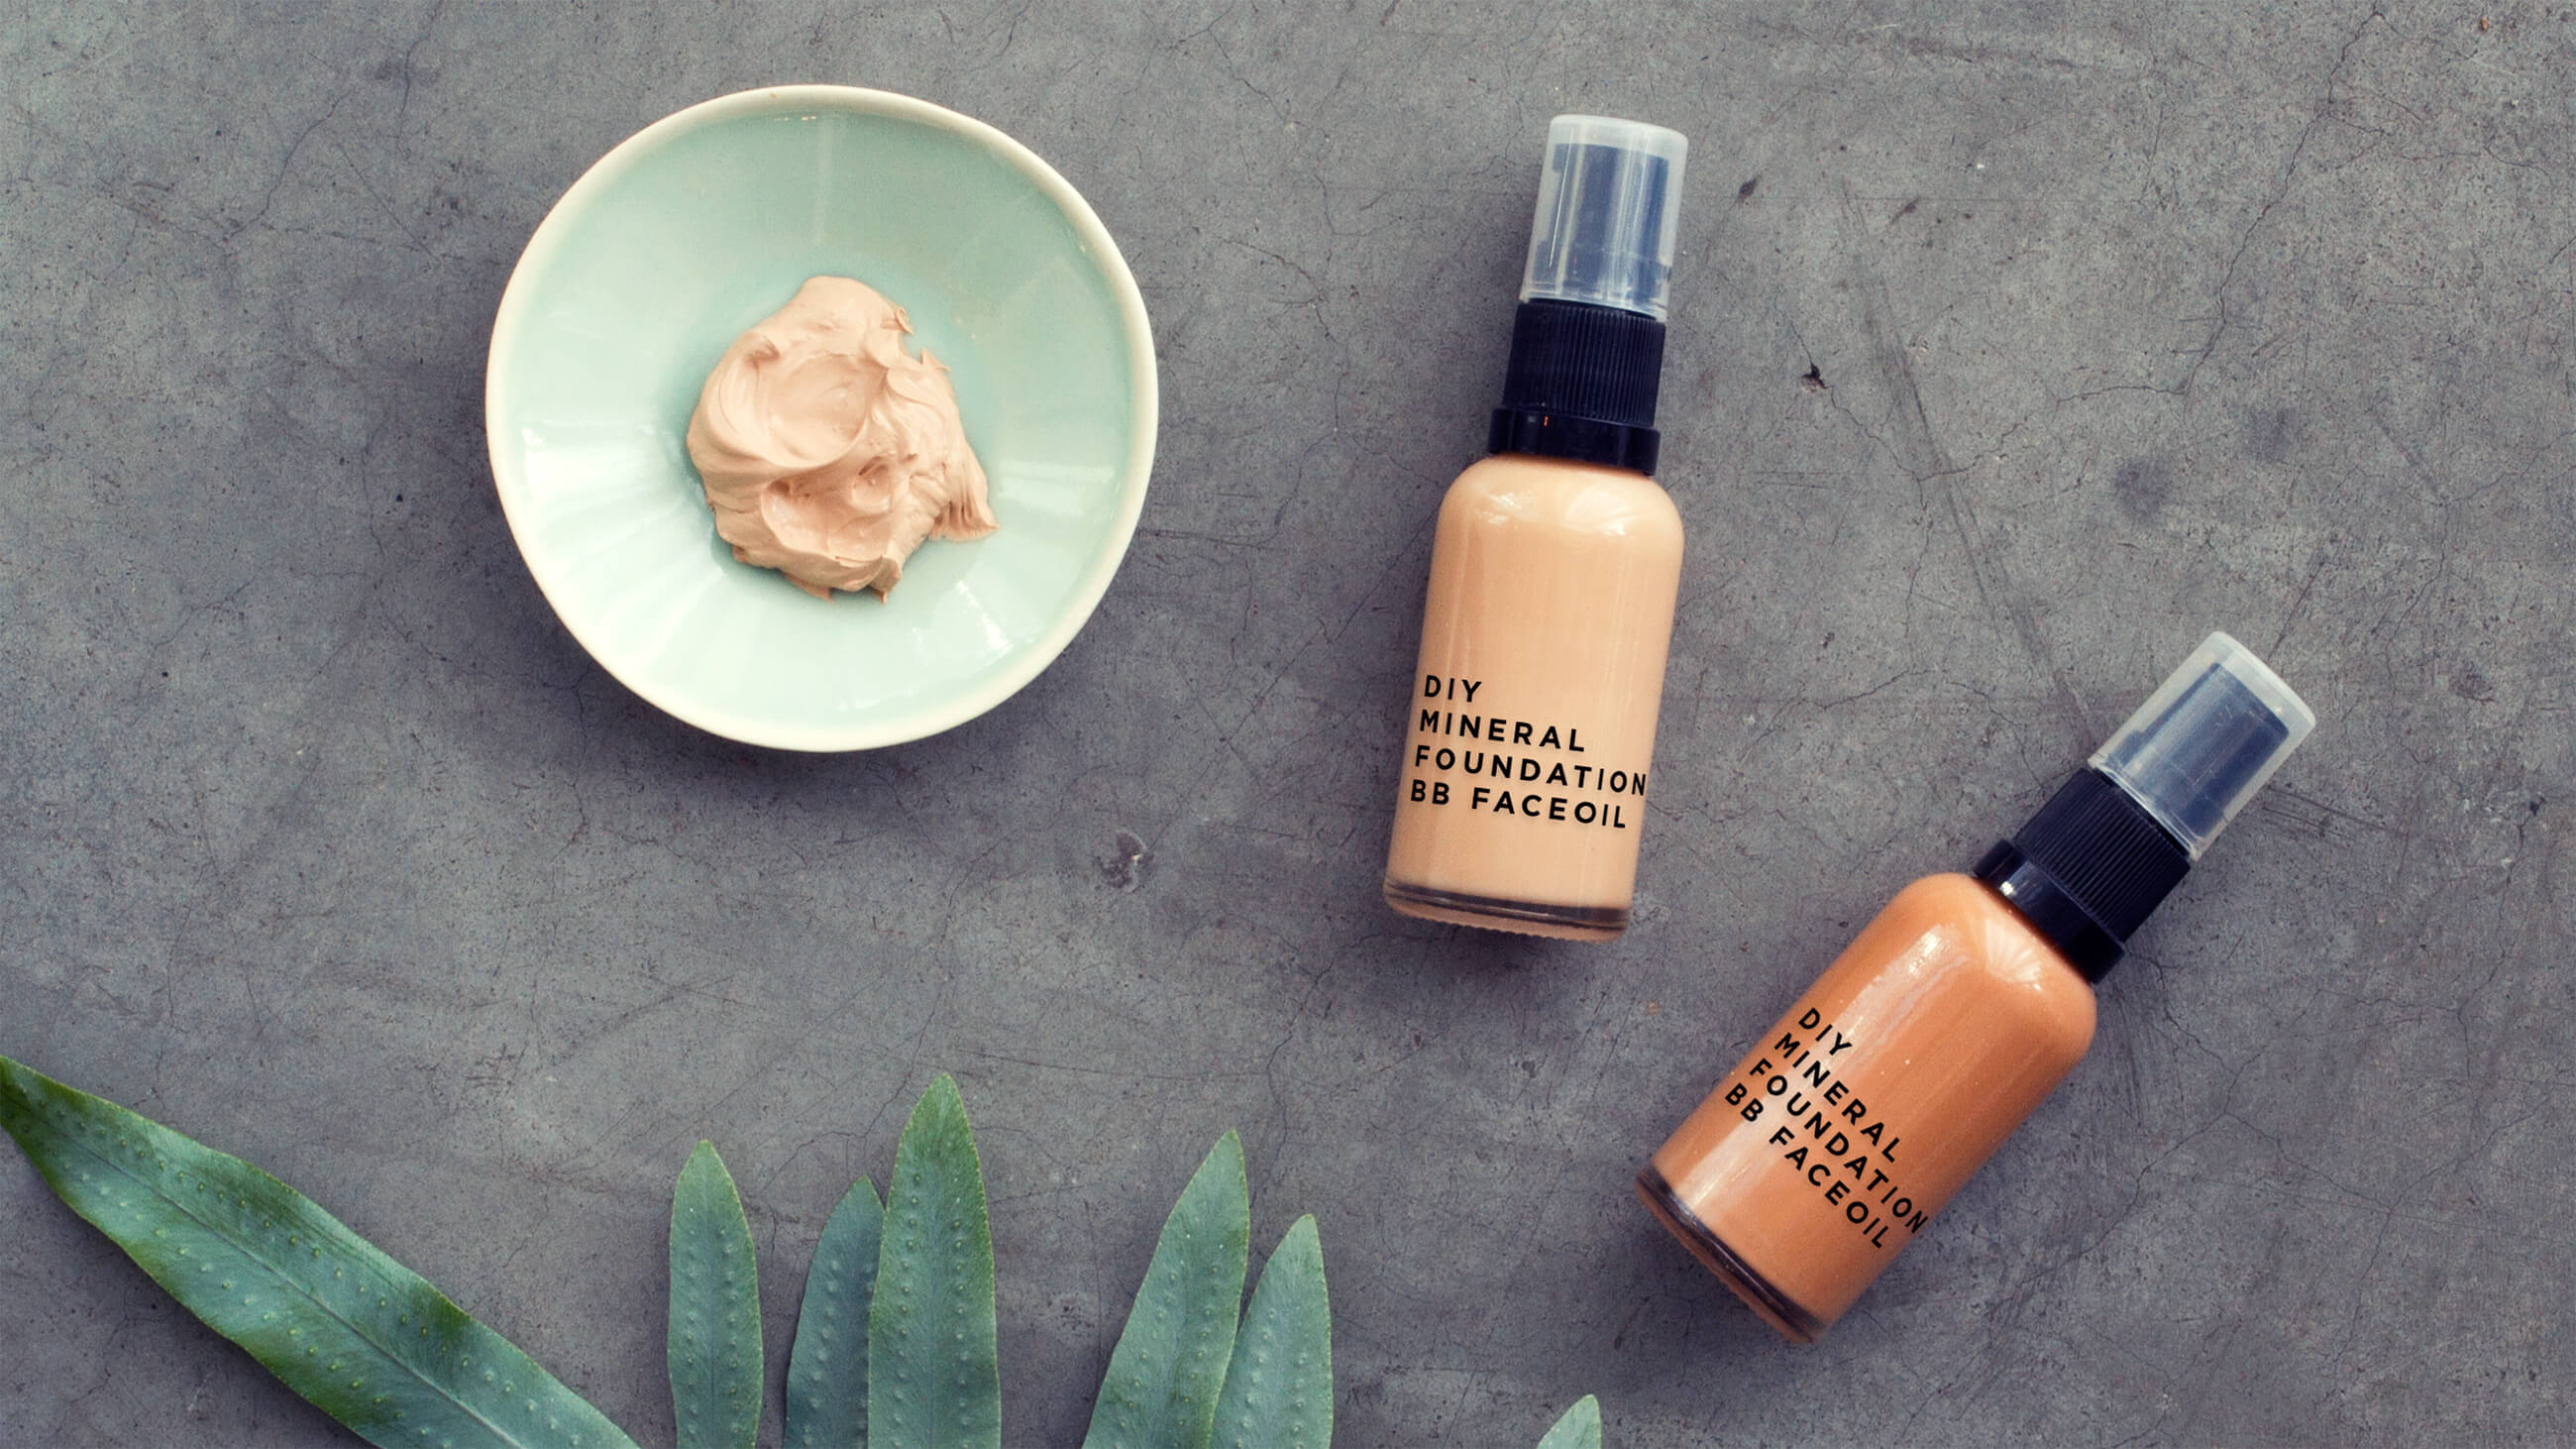 DIY mineral foundation - organicmakers.se